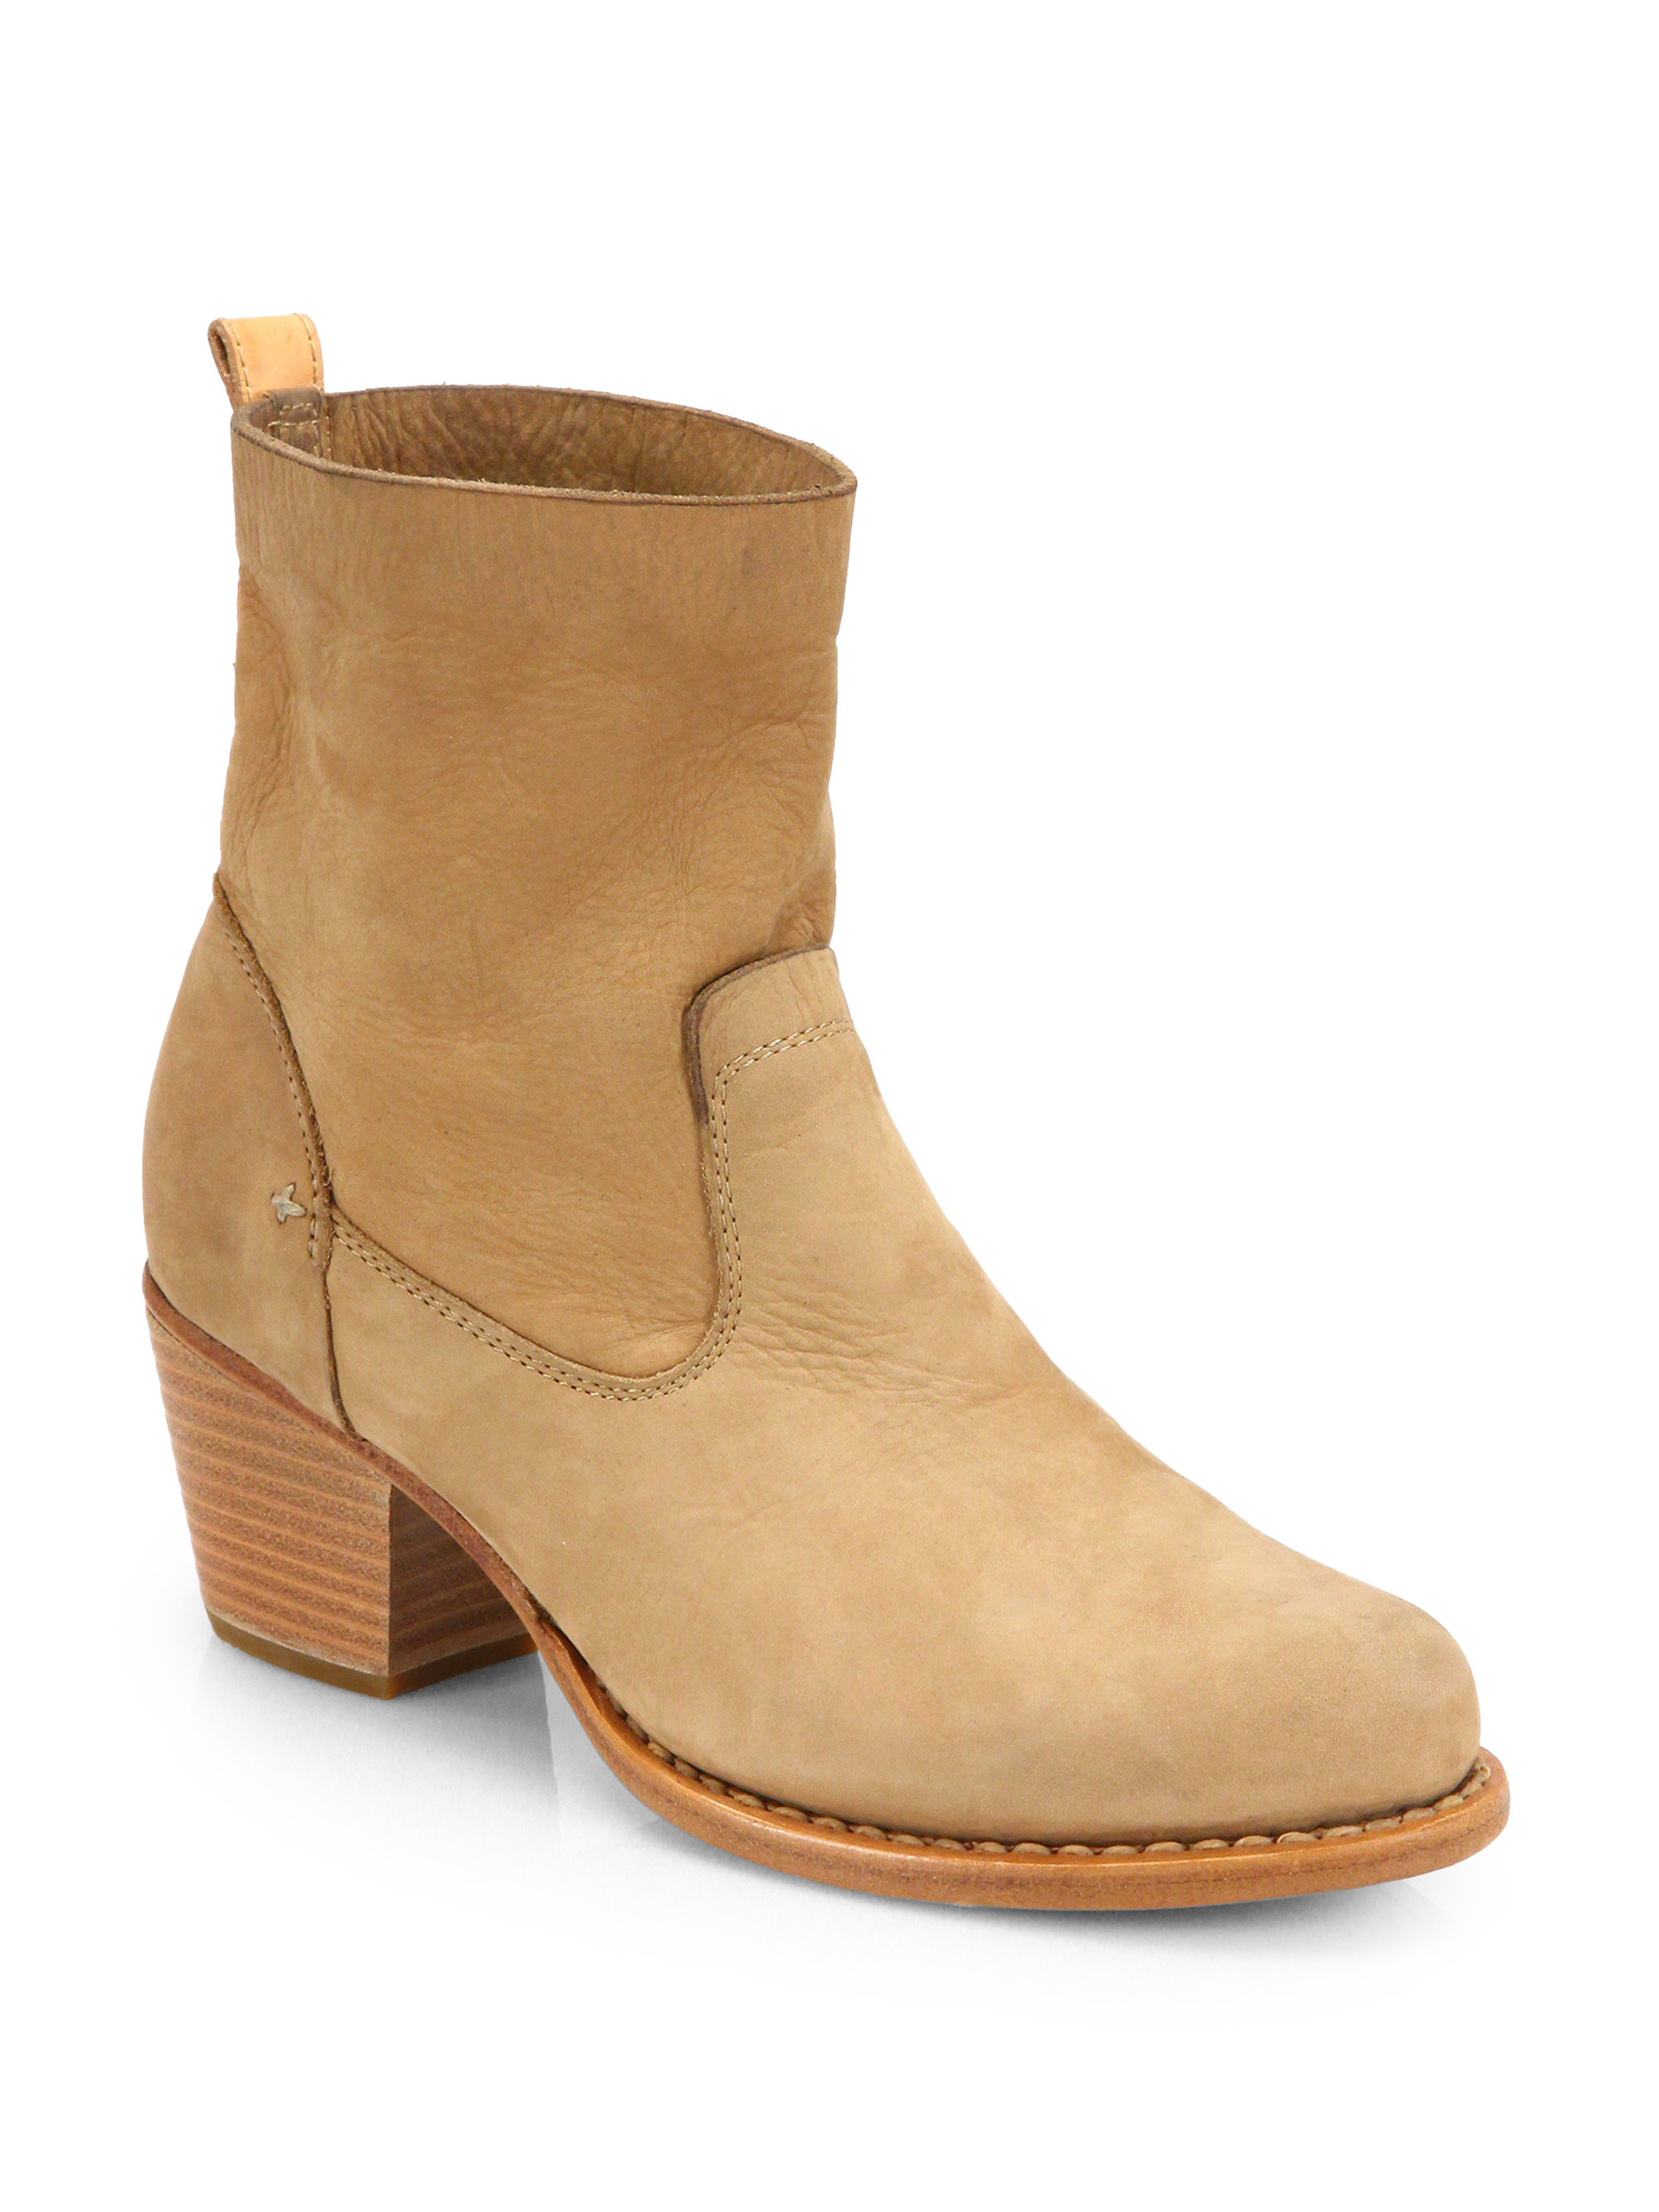 Rag & Bone Suede Mid-Calf Boots deals for sale fashion Style pictures cheap online ZjjNL